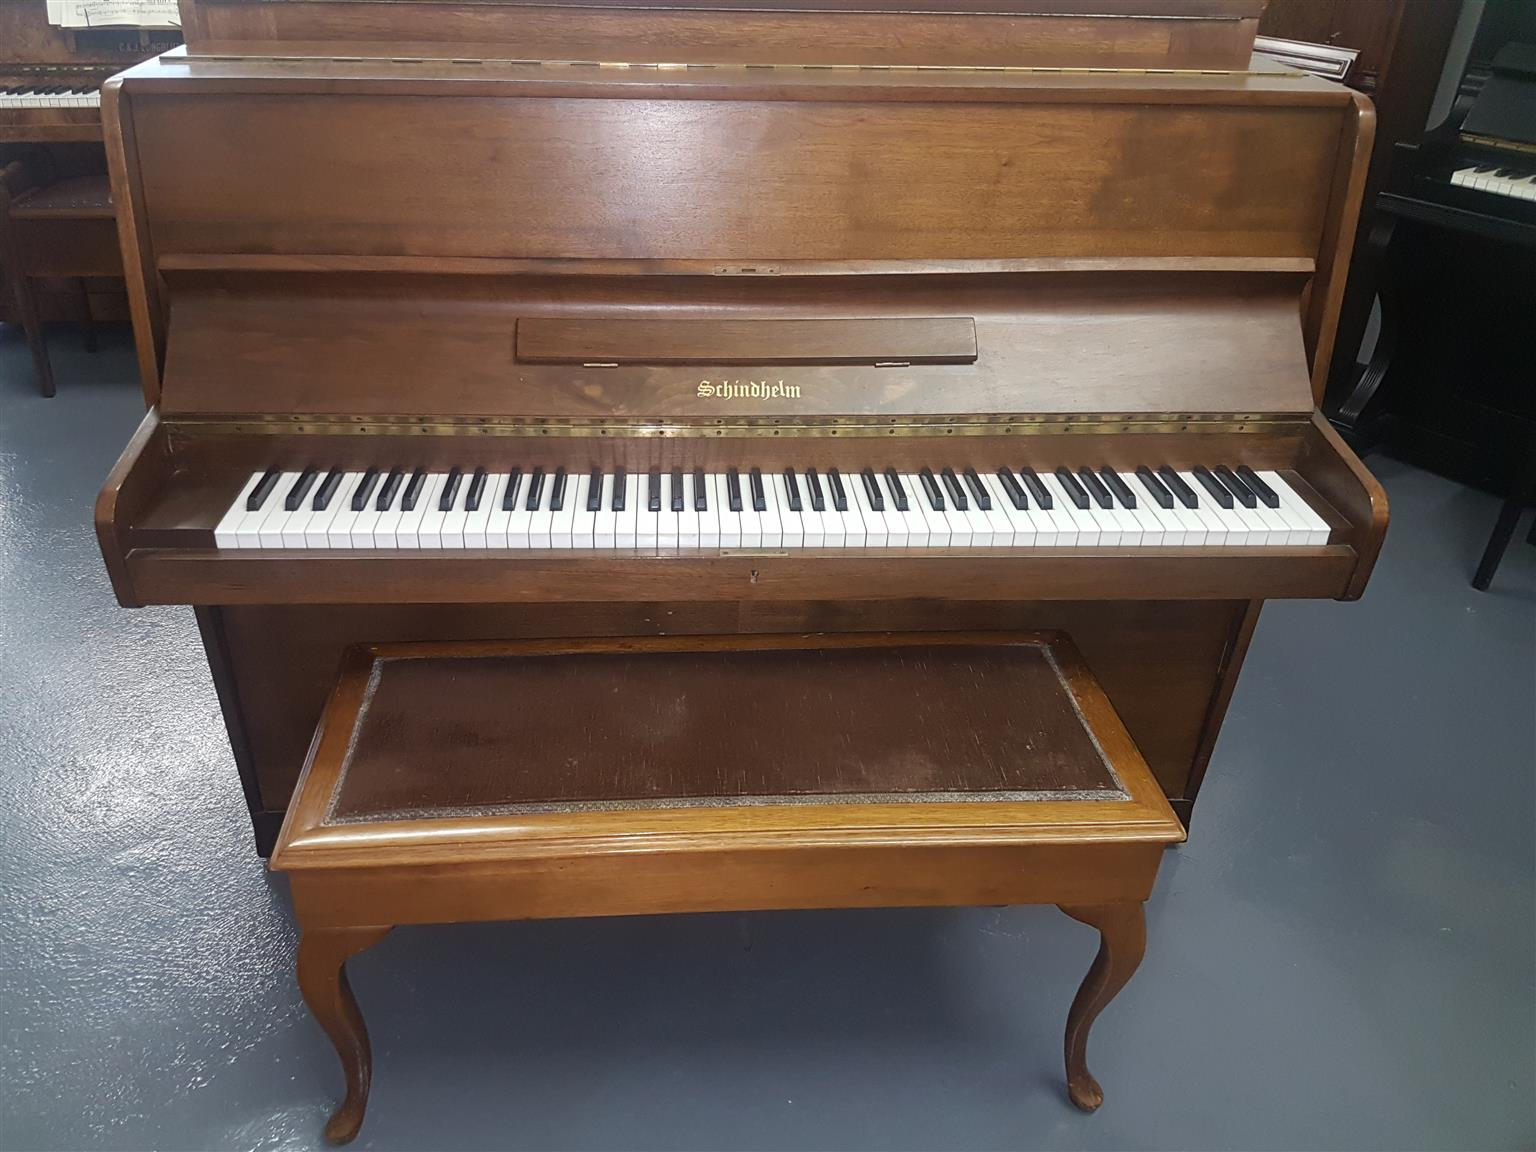 Schindhelm Upright Piano 1970s